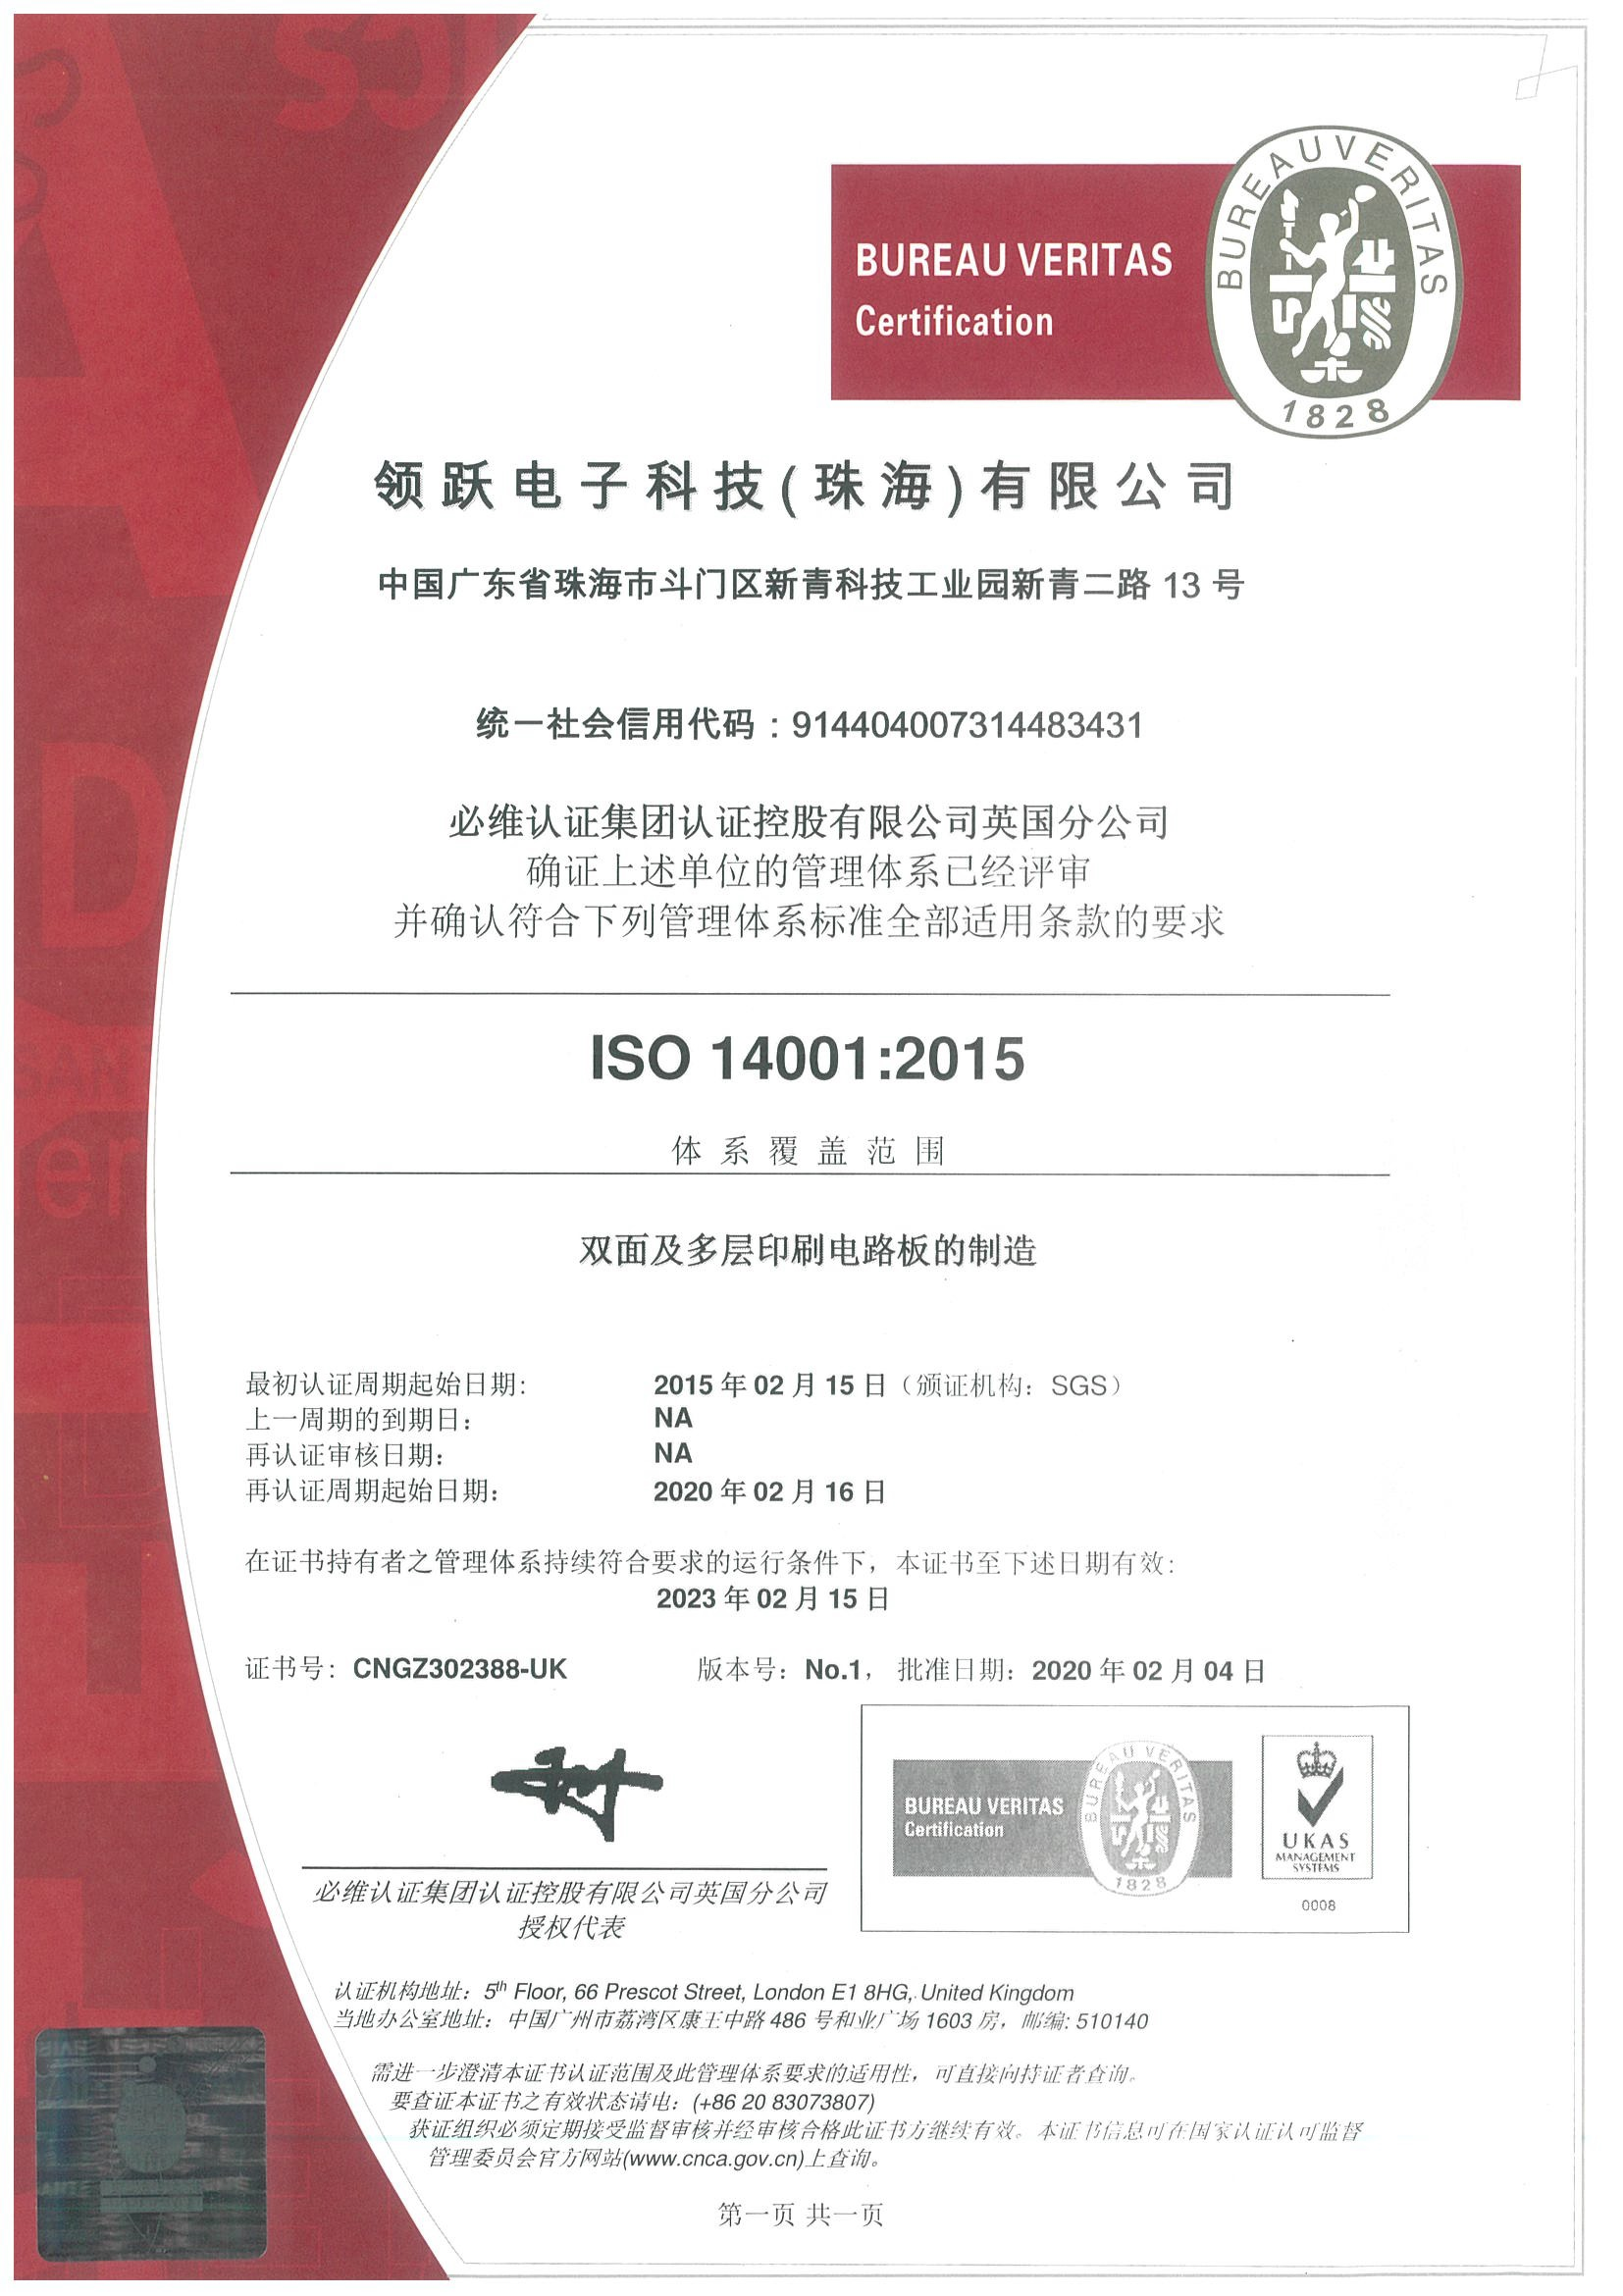 ISO14001 Certificate (2020.2.16-2023.2.15)Chinese